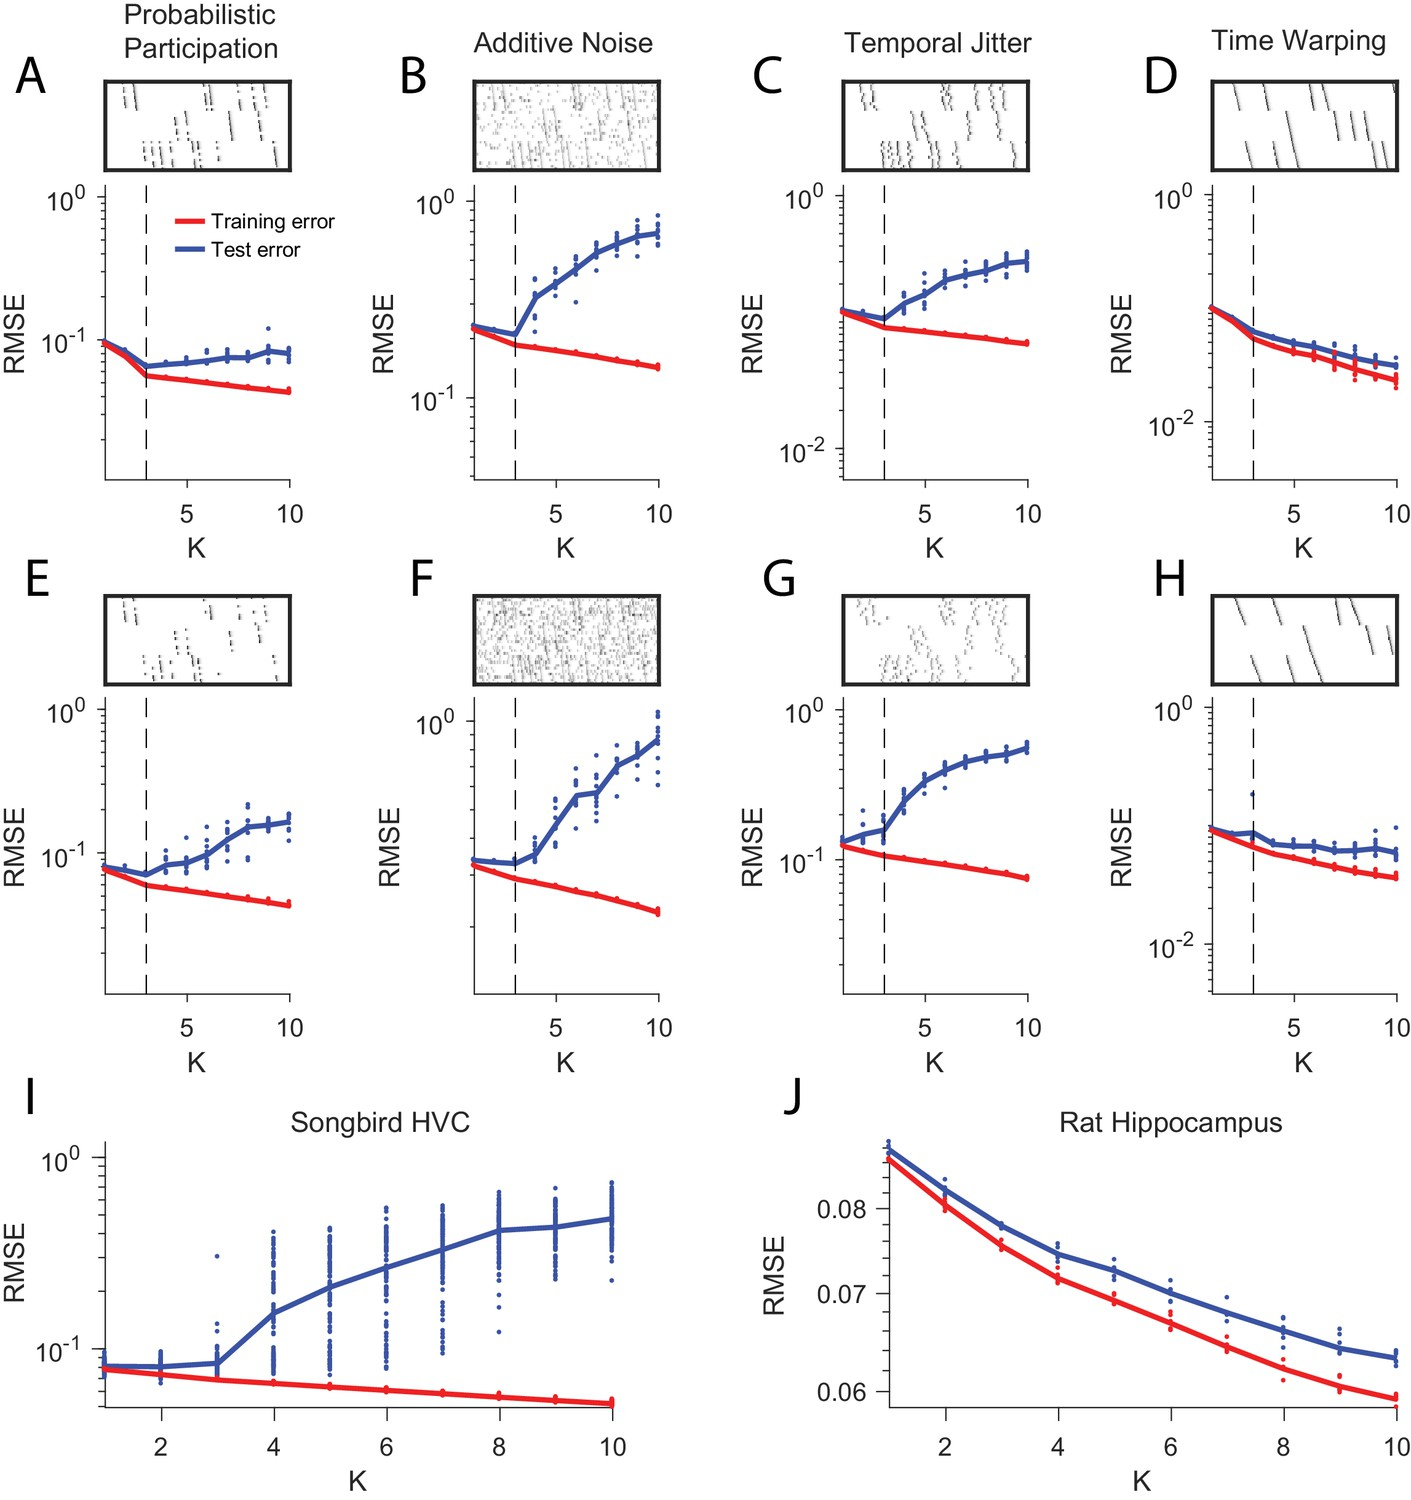 Unsupervised discovery of temporal sequences in high-dimensional